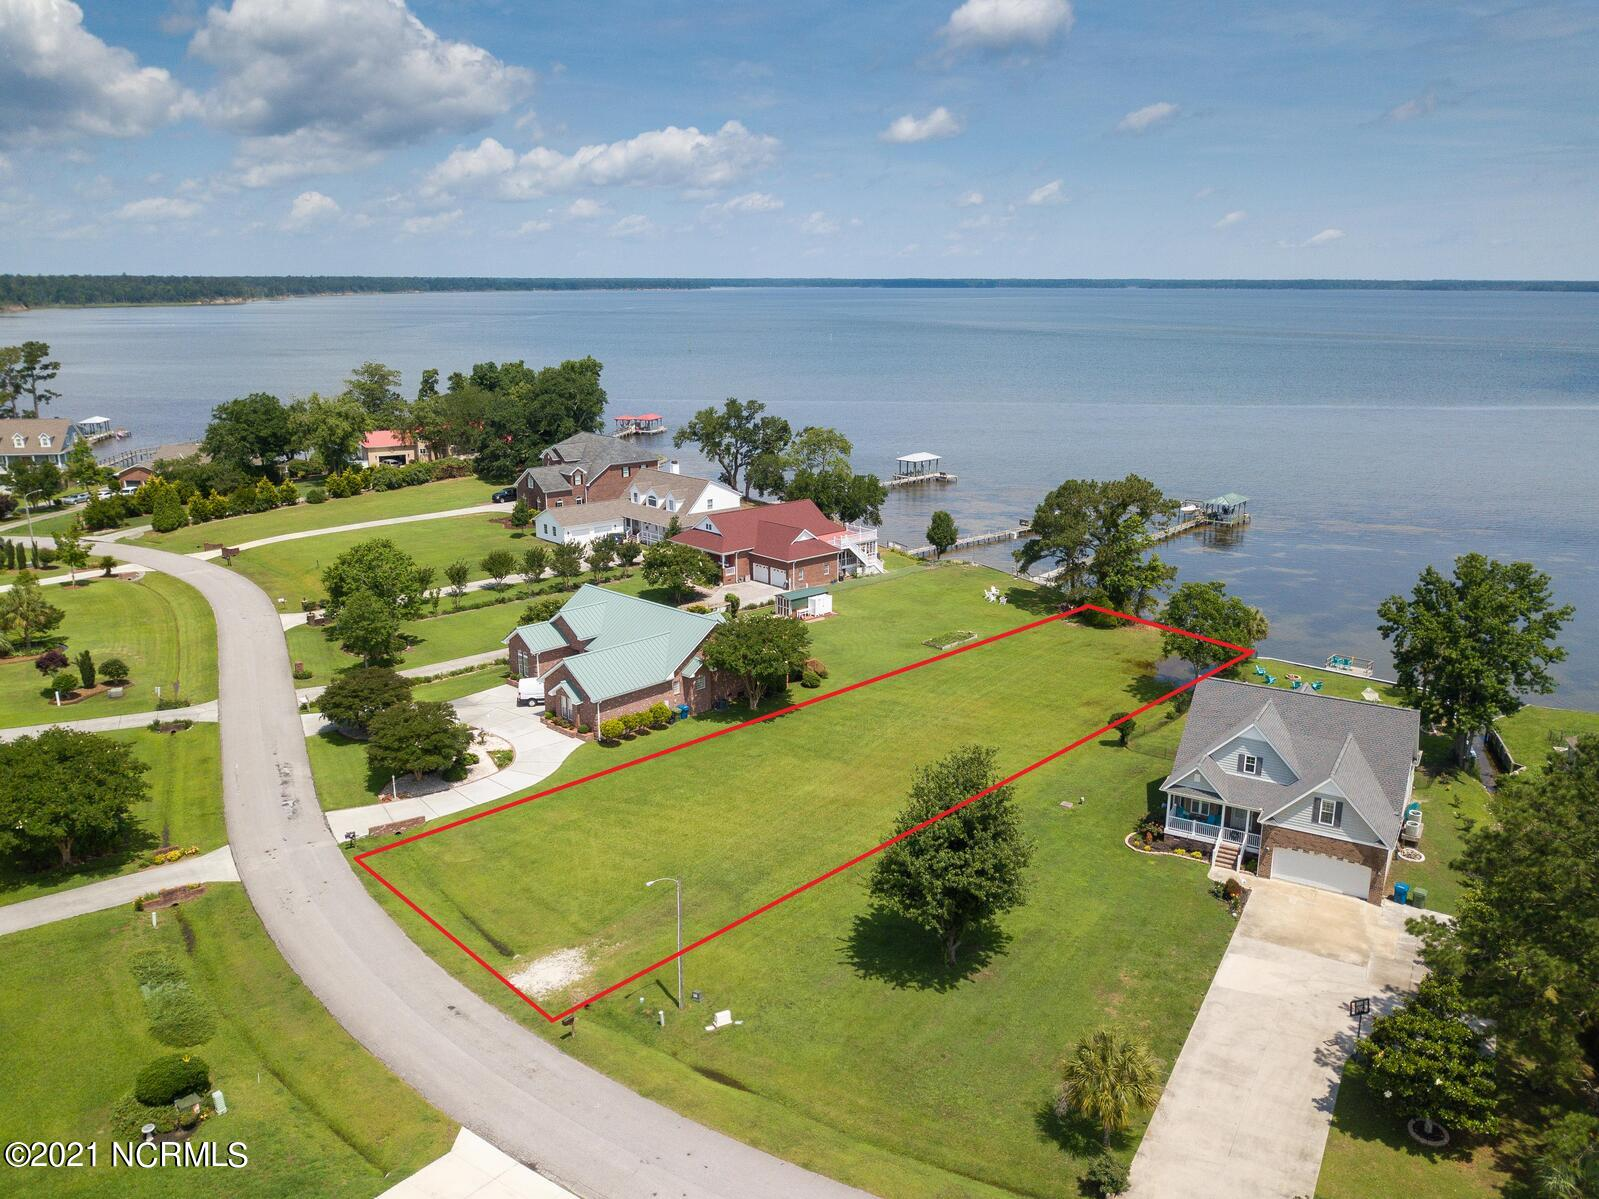 Here's your chance to own the last waterfront lot in New River Plantation, which overlooks Stone's Bay, Ellis Cove, and the bridge to Camp Lejeune! At over half an acre, this lot offers enough room to lay out your dream home design and possibly fit a pool too! Build a pier and dock to meet your specific boating needs after you obtain a CAMA permit, you may want a lift or jet ski slip too... it's up to you!  New River Plantation is a waterfront community which offers a water access ramp, clubhouse, swimming pool, and road maintenance on the private roads of this community. There is an expired three bedroom septic permit on file, ask for details when you call a Realtor today!